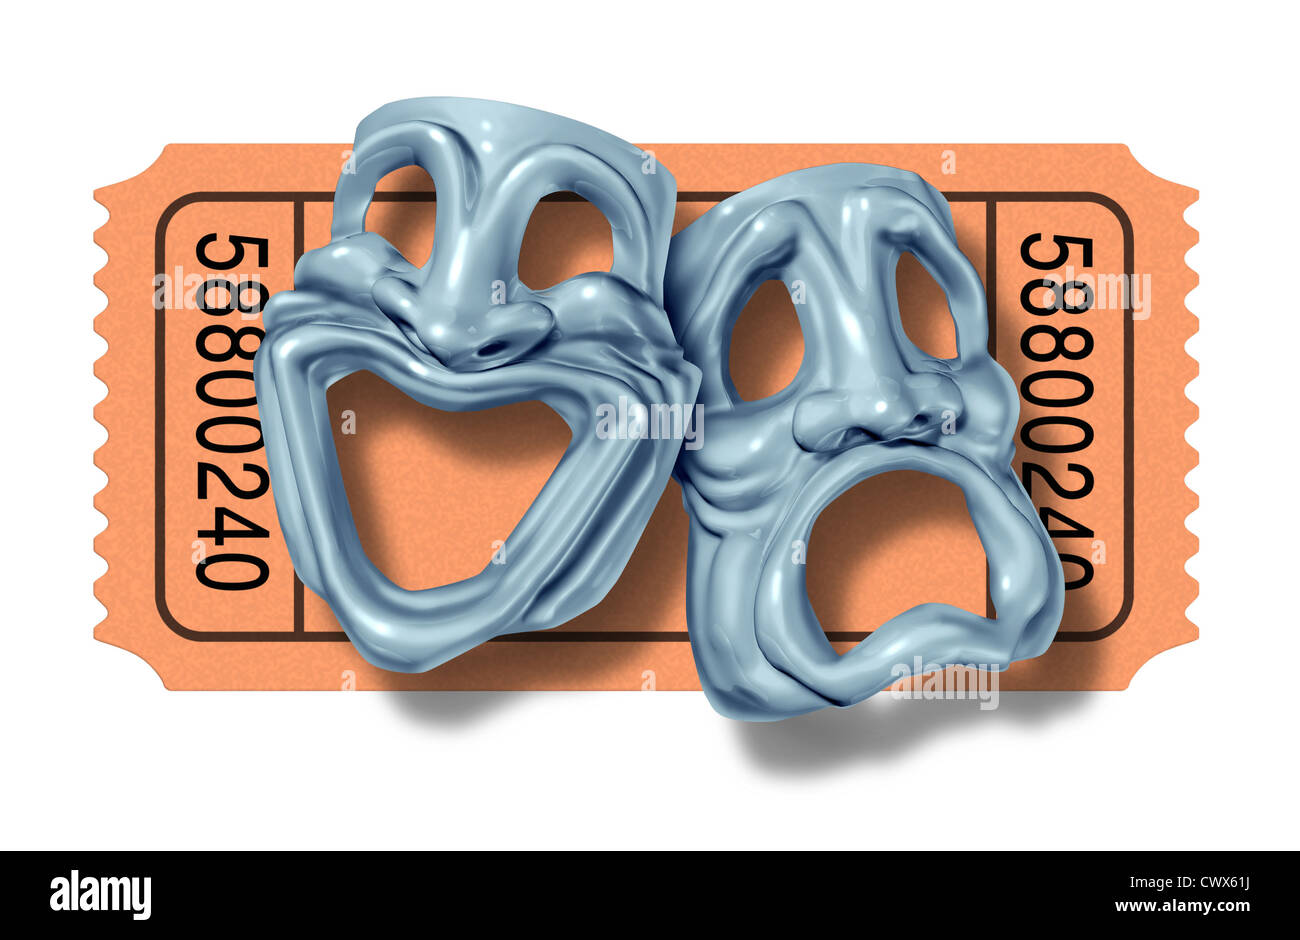 Movie ticket stub with silver comedy and tragedy masks symbol represented by two theatrical expressions with one - Stock Image